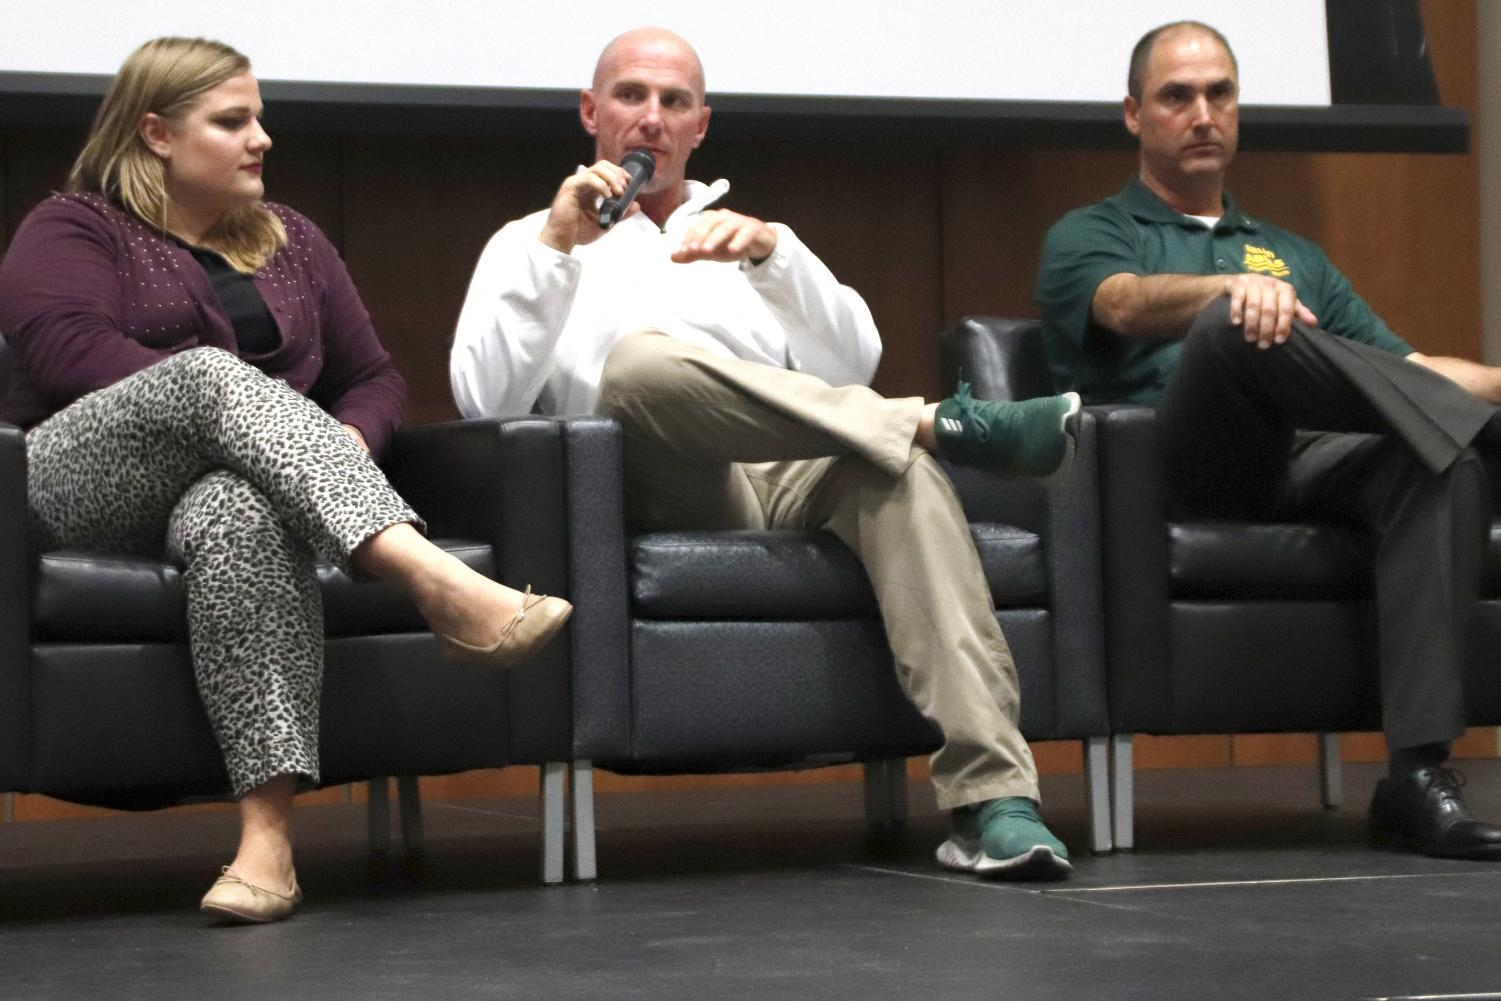 Matt Riser, head coach of baseball, shares his personal experience with substance addiction in college and discusses the importance of getting help. In the first half of the Mocktails event, the guest panel had an interaction with students to raise awareness for substance abuse.